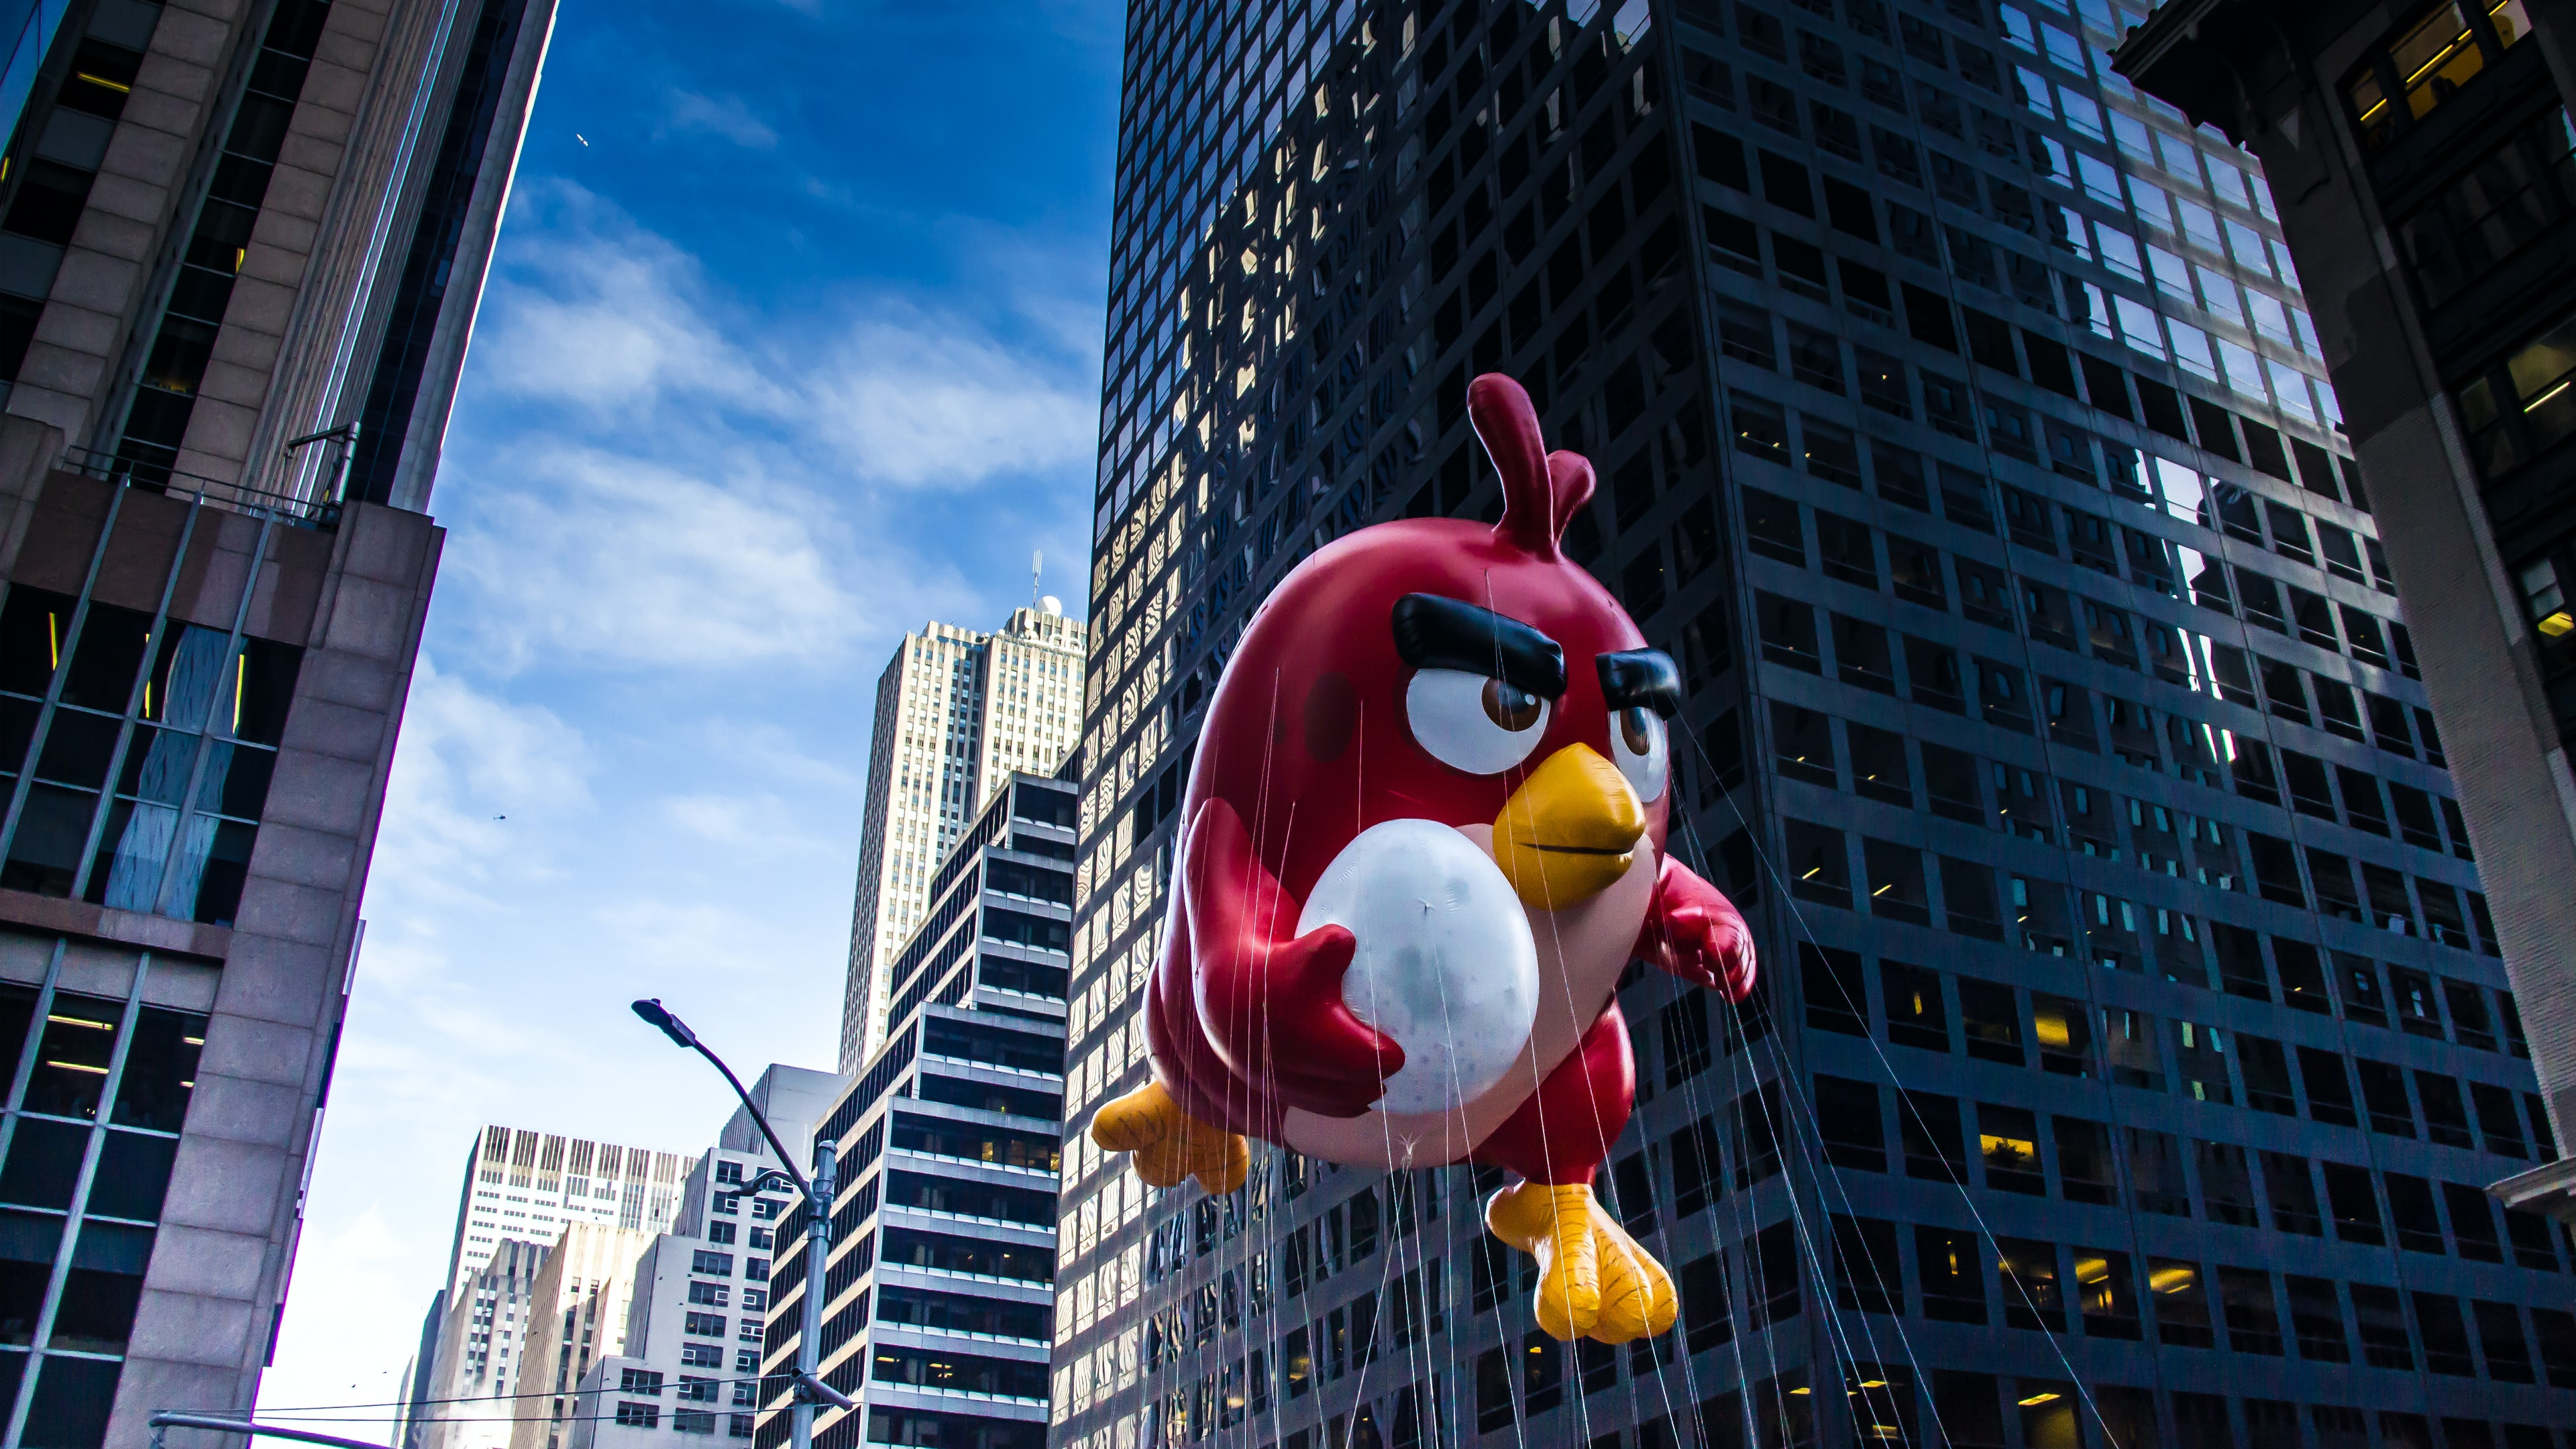 A red angry jumping through the street while holding an egg.